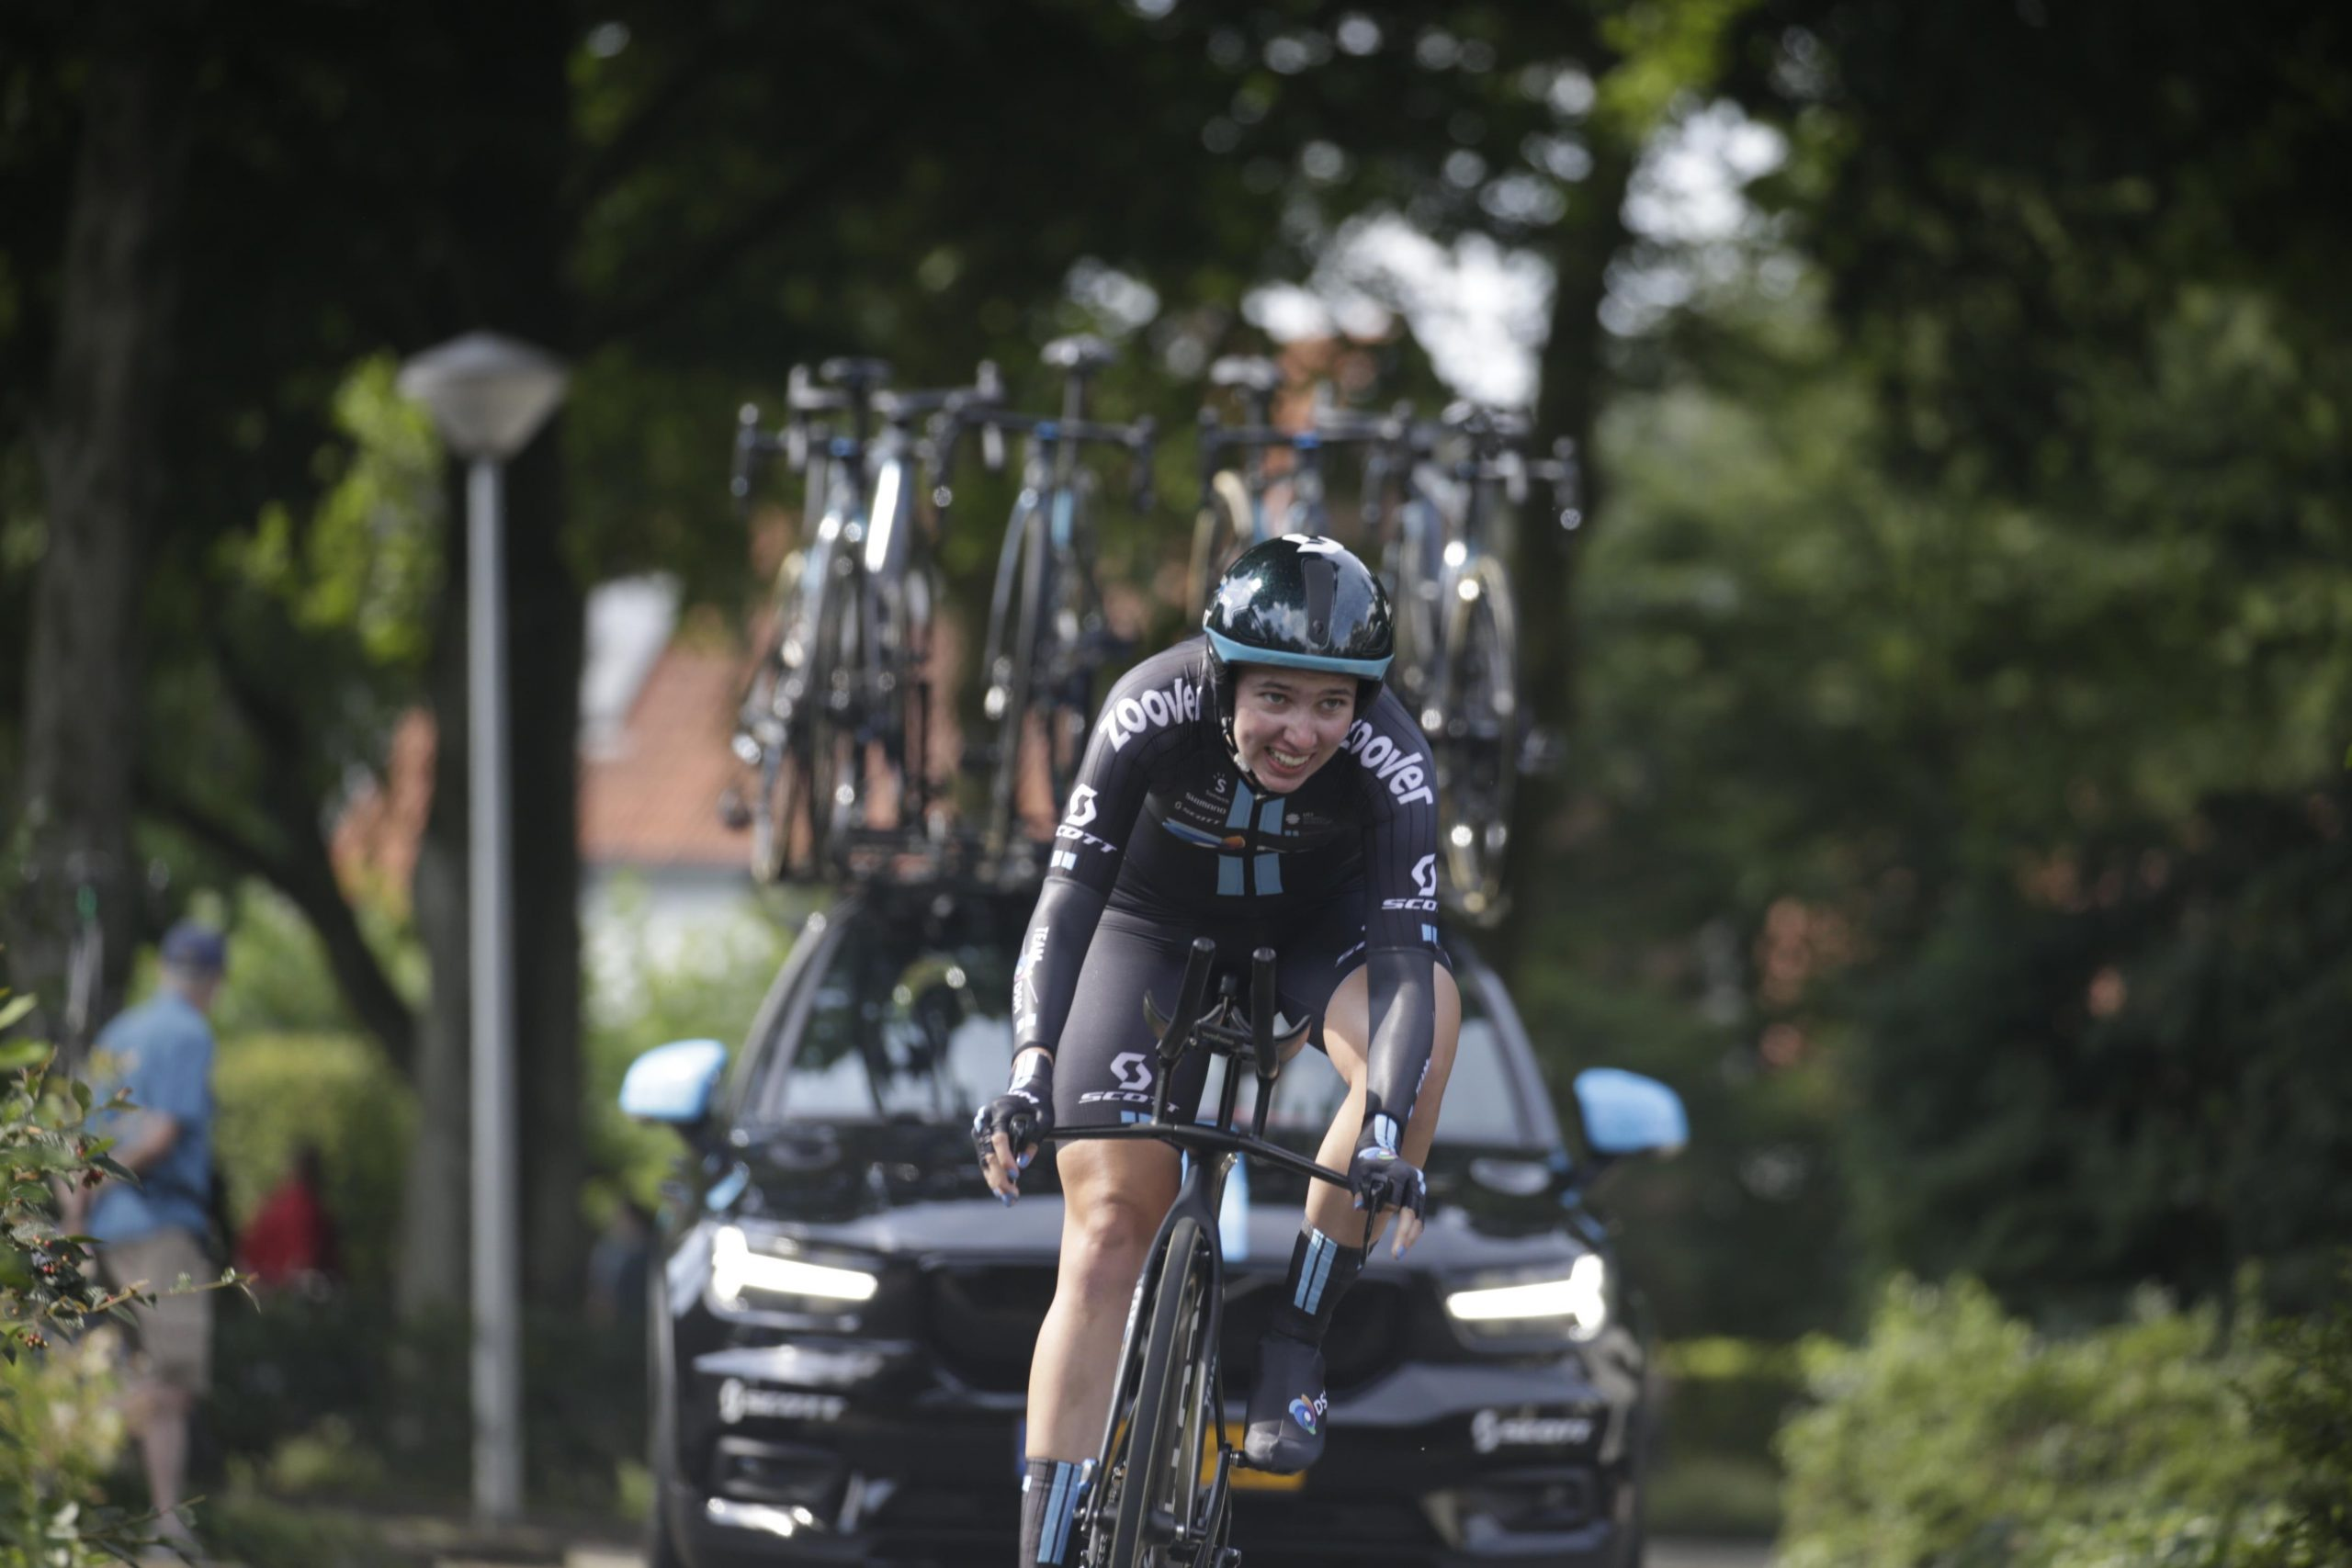 Specialists do battle in flat and powerful TT in Gennep